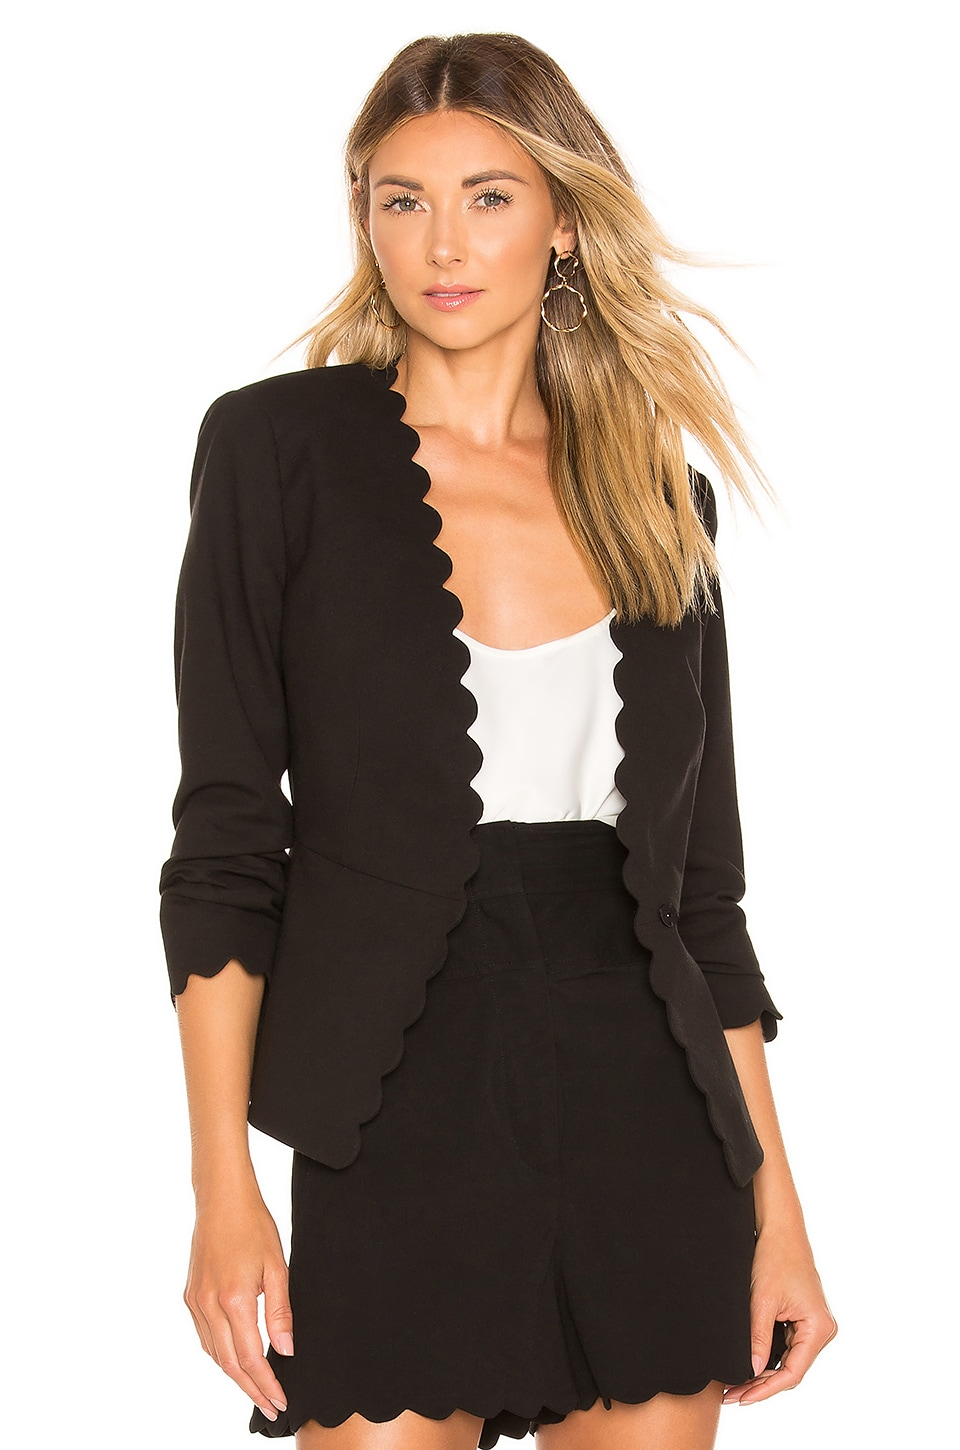 Rebecca Taylor Jackets REBECCA TAYLOR SCALLOP SUIT JACKET IN BLACK.